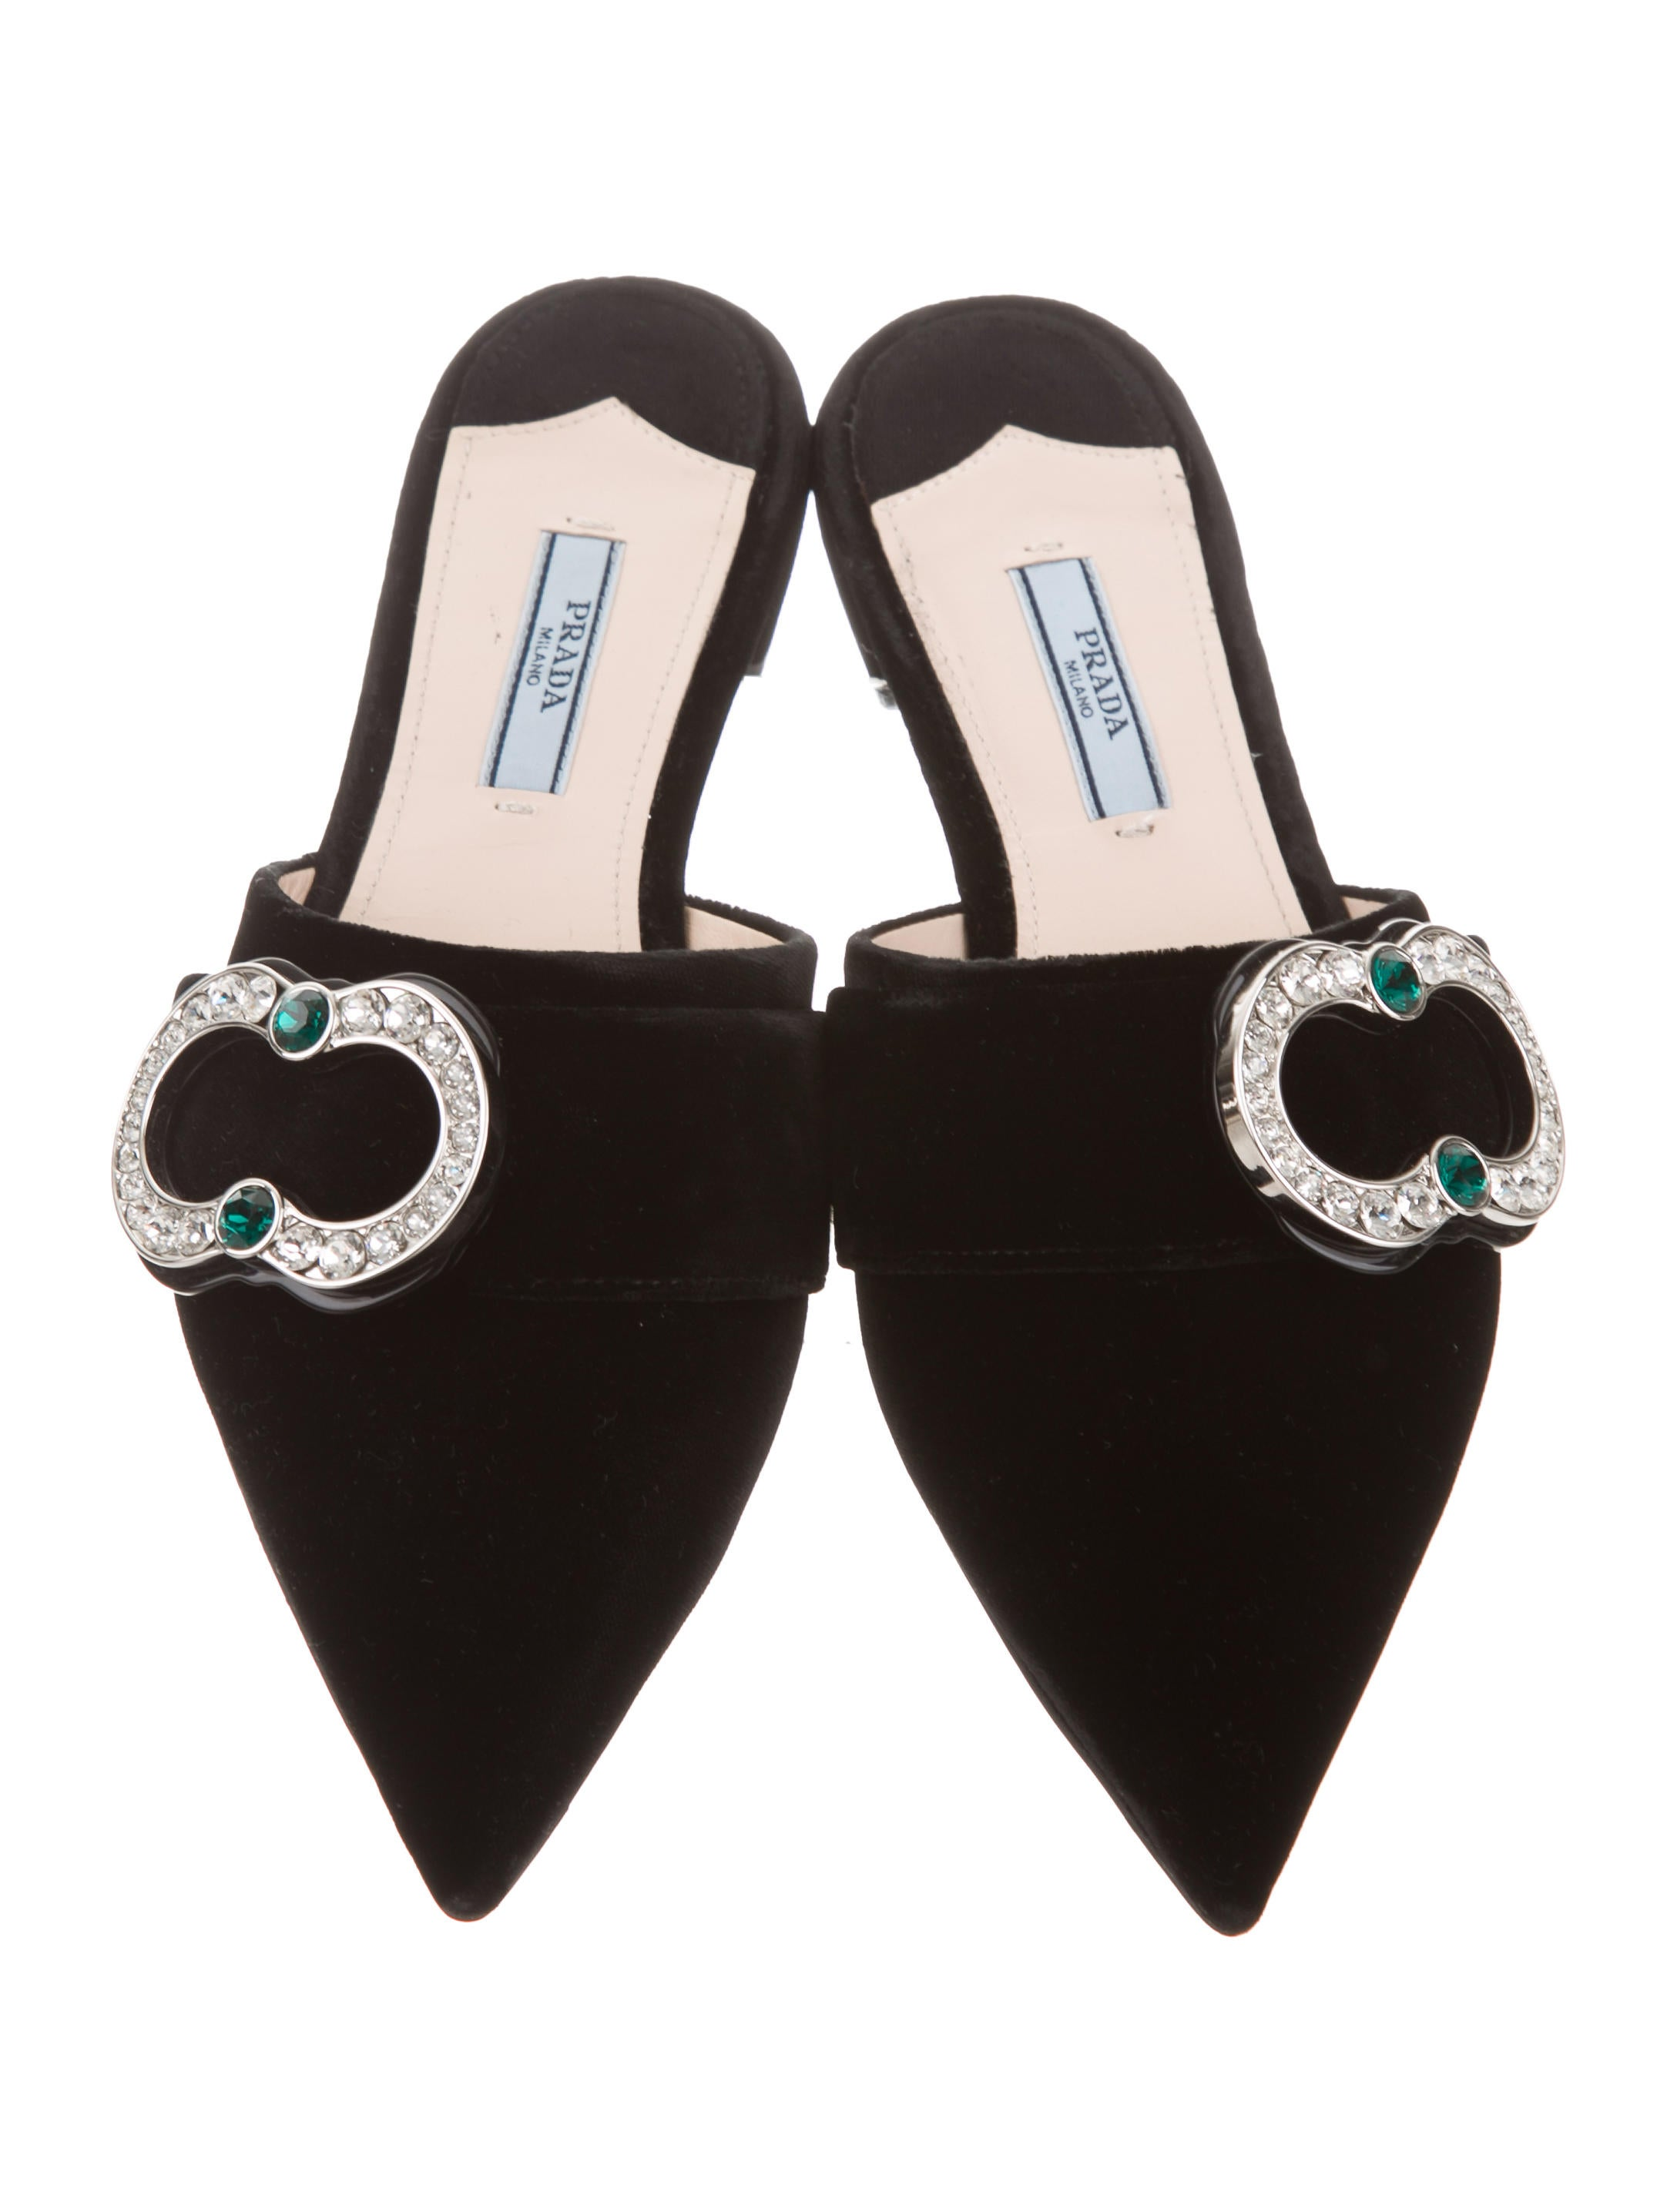 outlet free shipping authentic 2014 sale online Prada Jewel-Embellished Pointed-Toe Mules w/ Tags cheap sale release dates outlet free shipping Vxsz5v54y